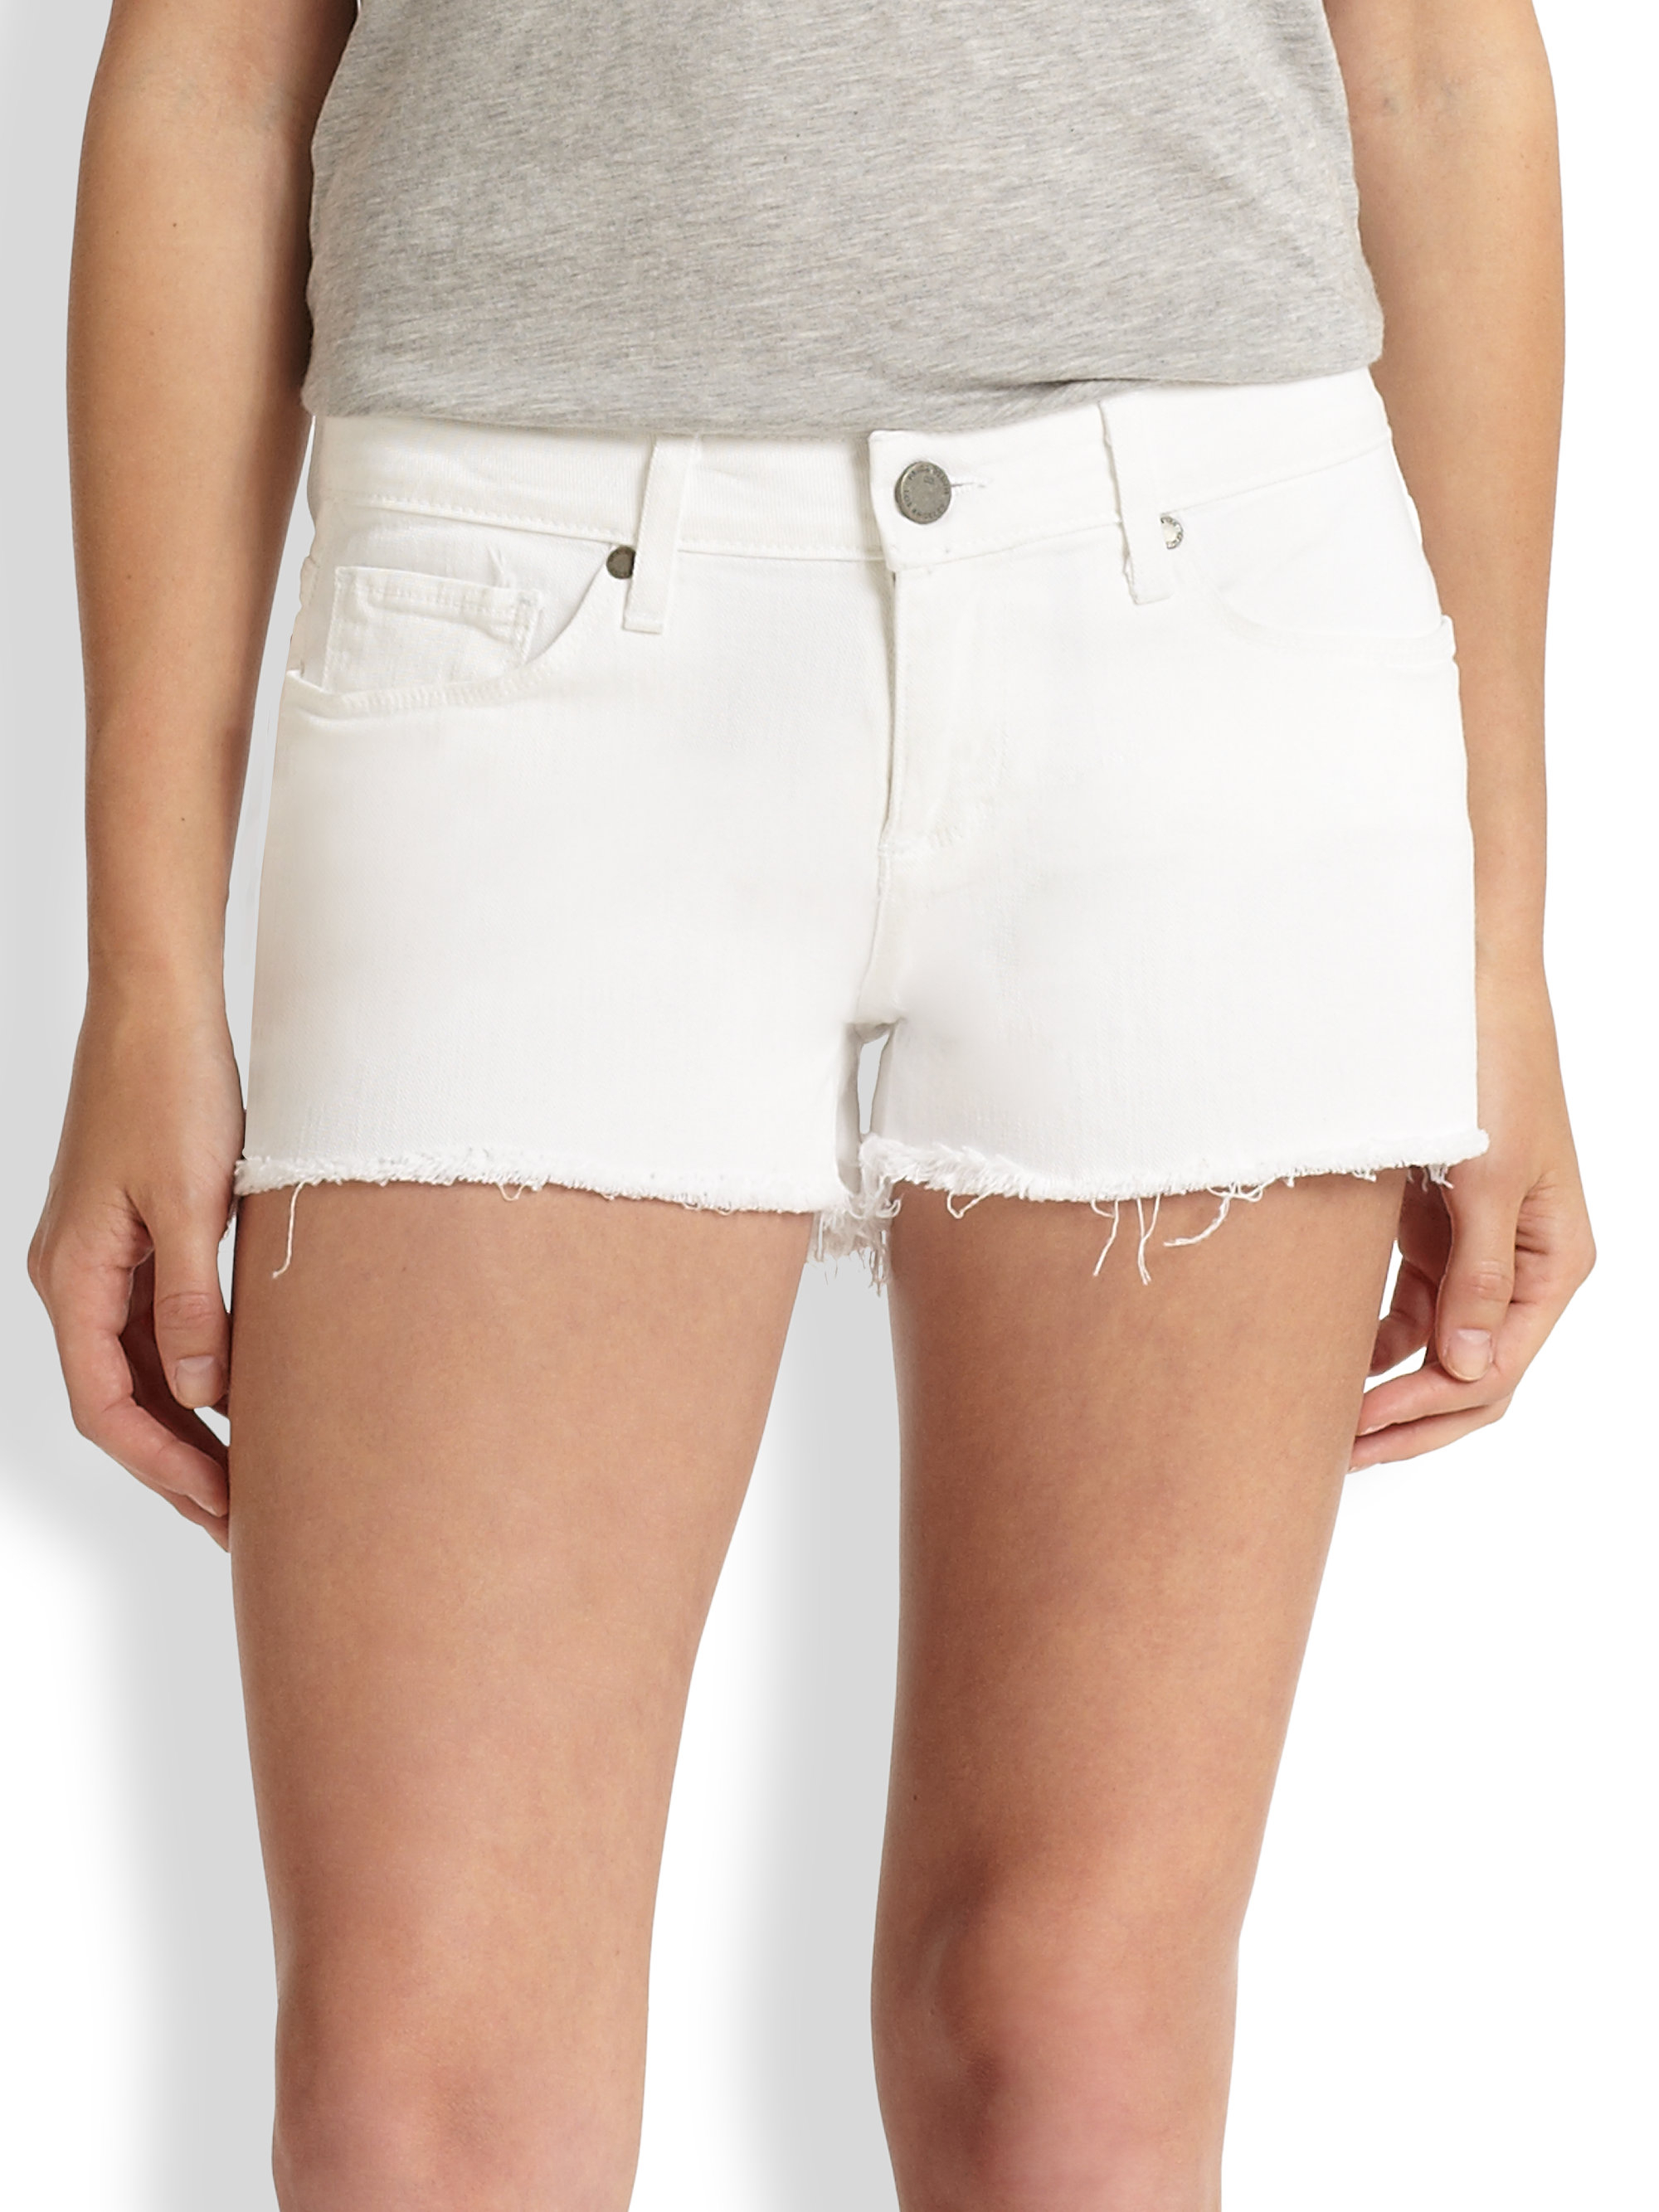 Lyst - Paige Catalina Stretch Denim Cut-Off Shorts in White